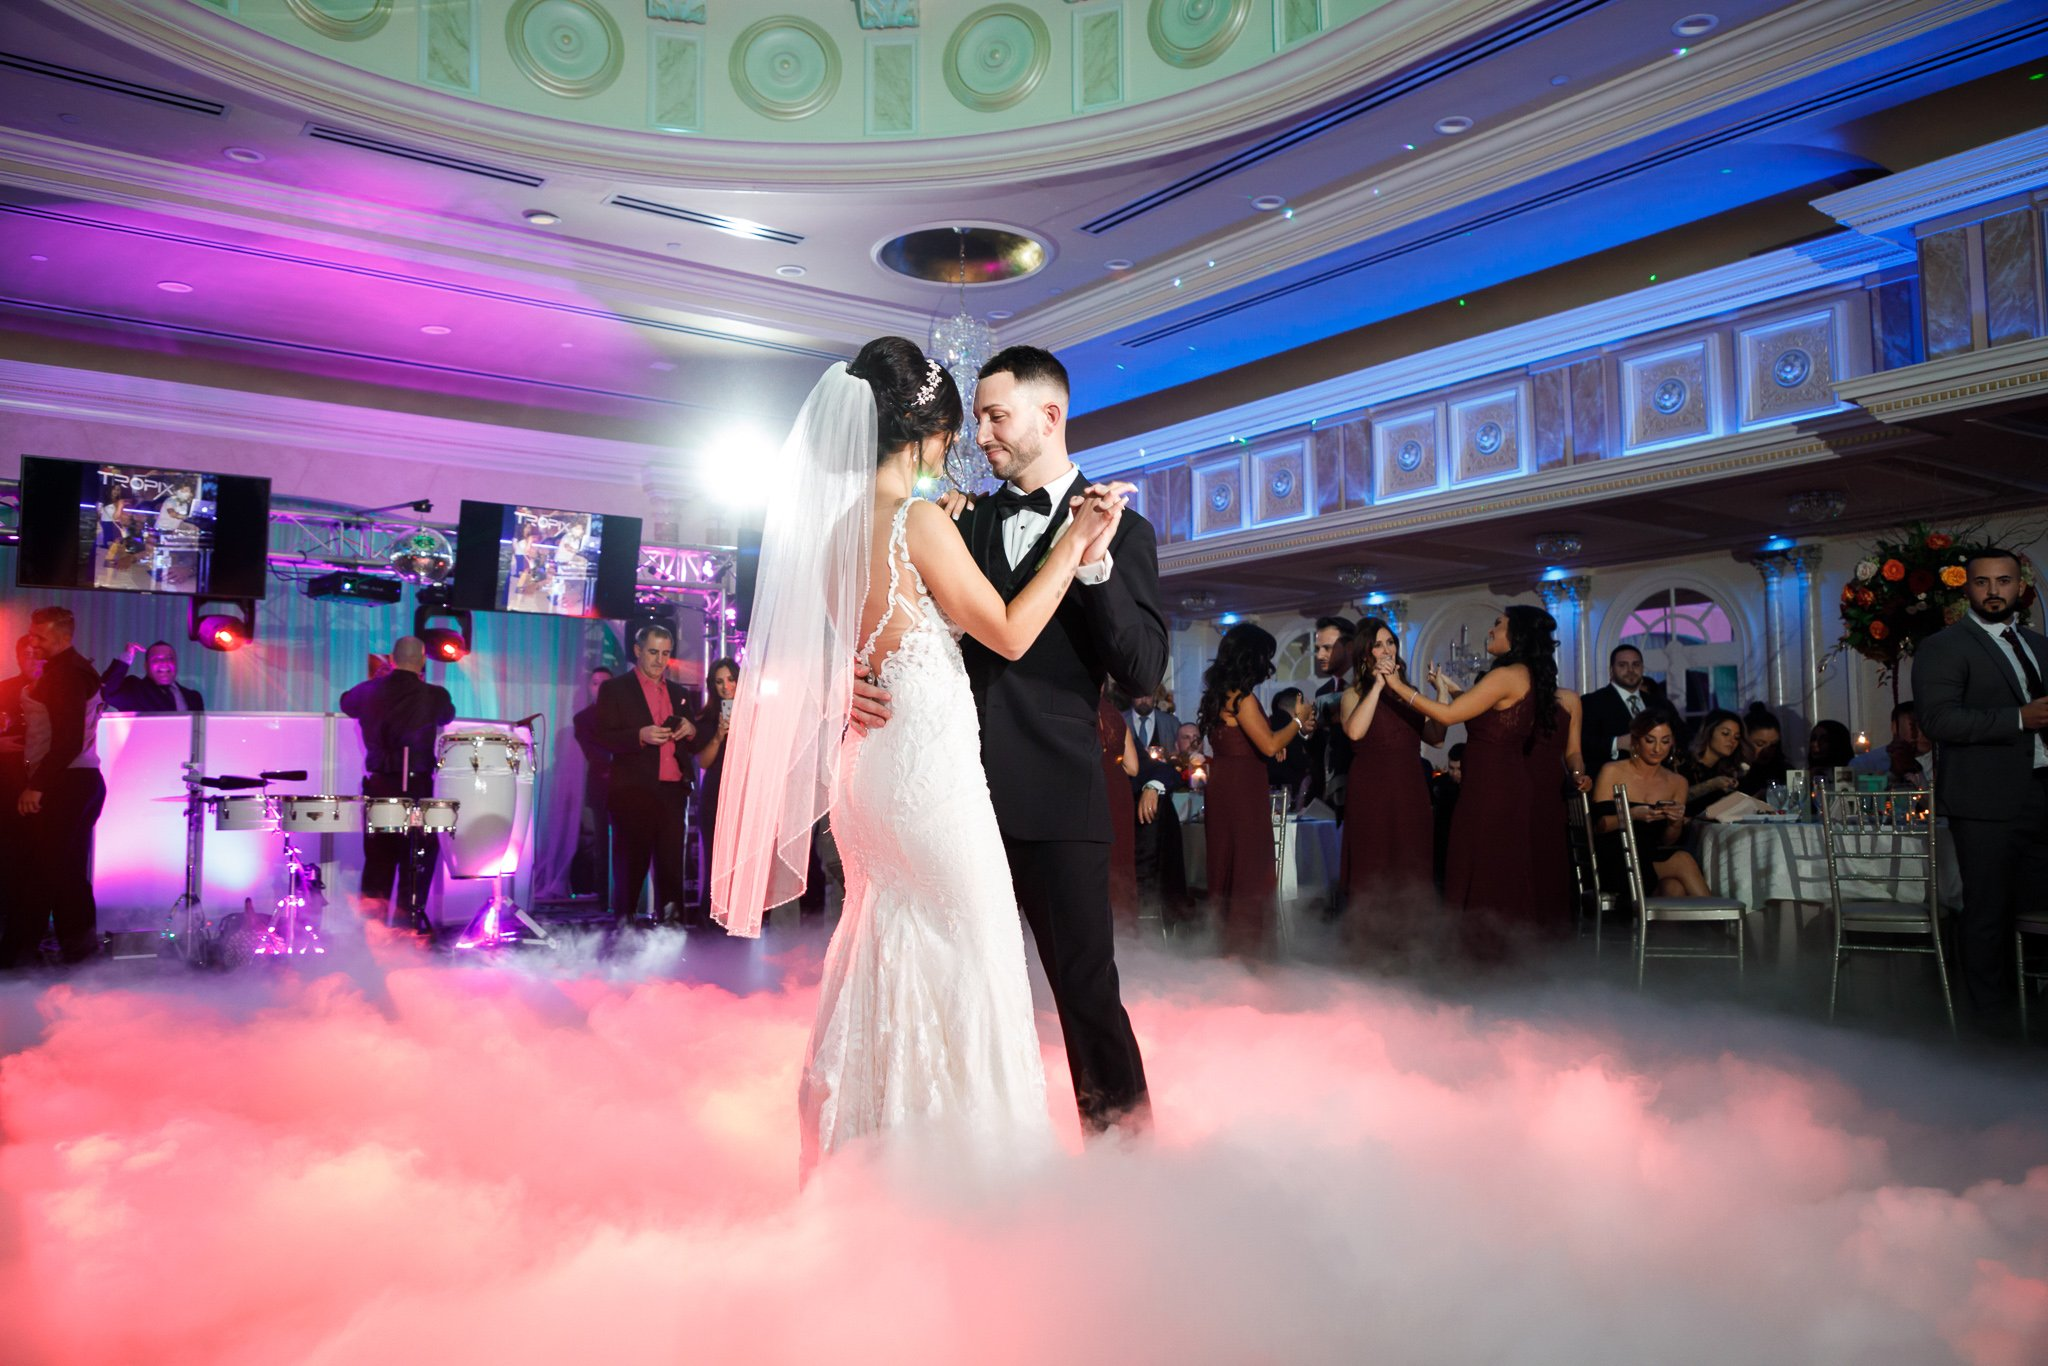 Bride and Groom dancing at wedding | Lotus Wedding Photography